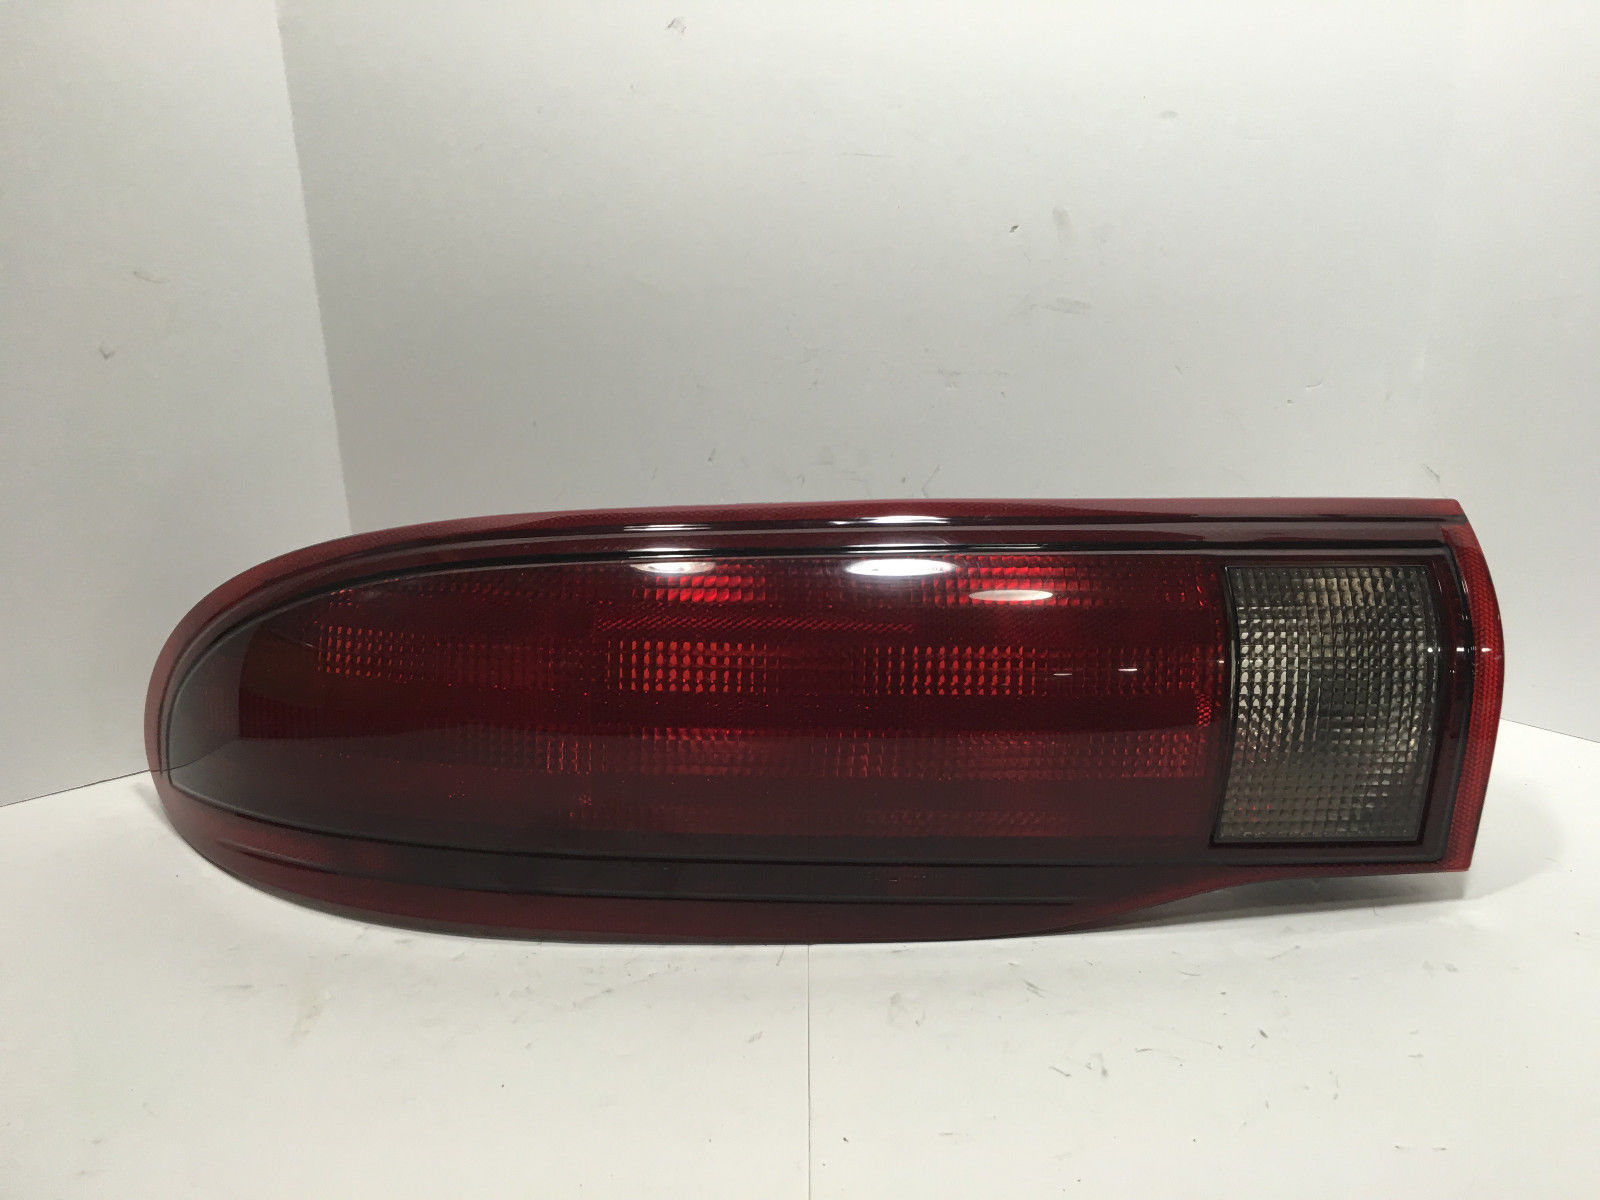 EUFAB 11489 Complete Rear Light Left